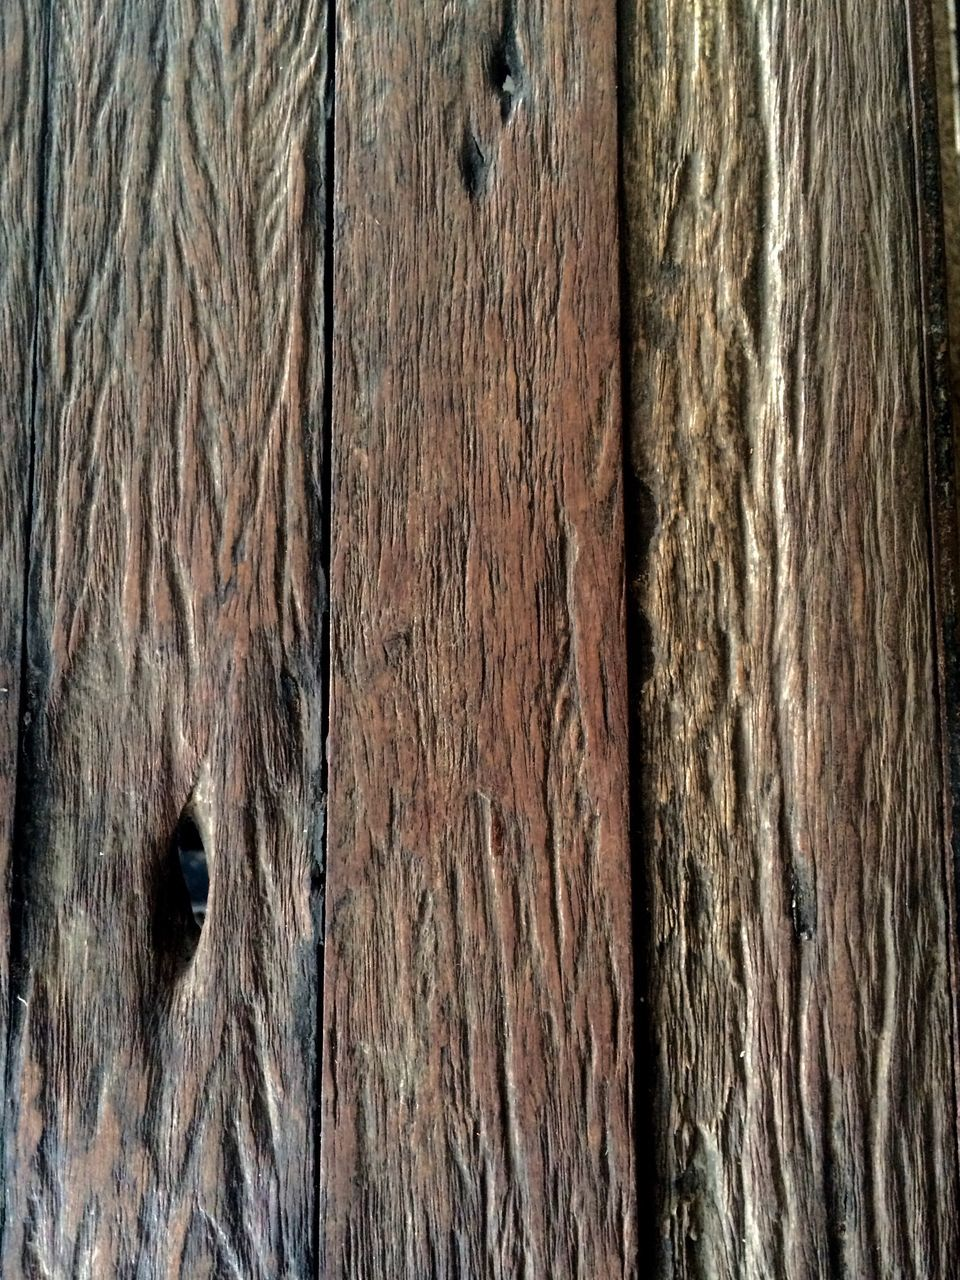 wood - material, textured, close-up, backgrounds, full frame, pattern, brown, rough, day, no people, tree trunk, wood grain, tree, outdoors